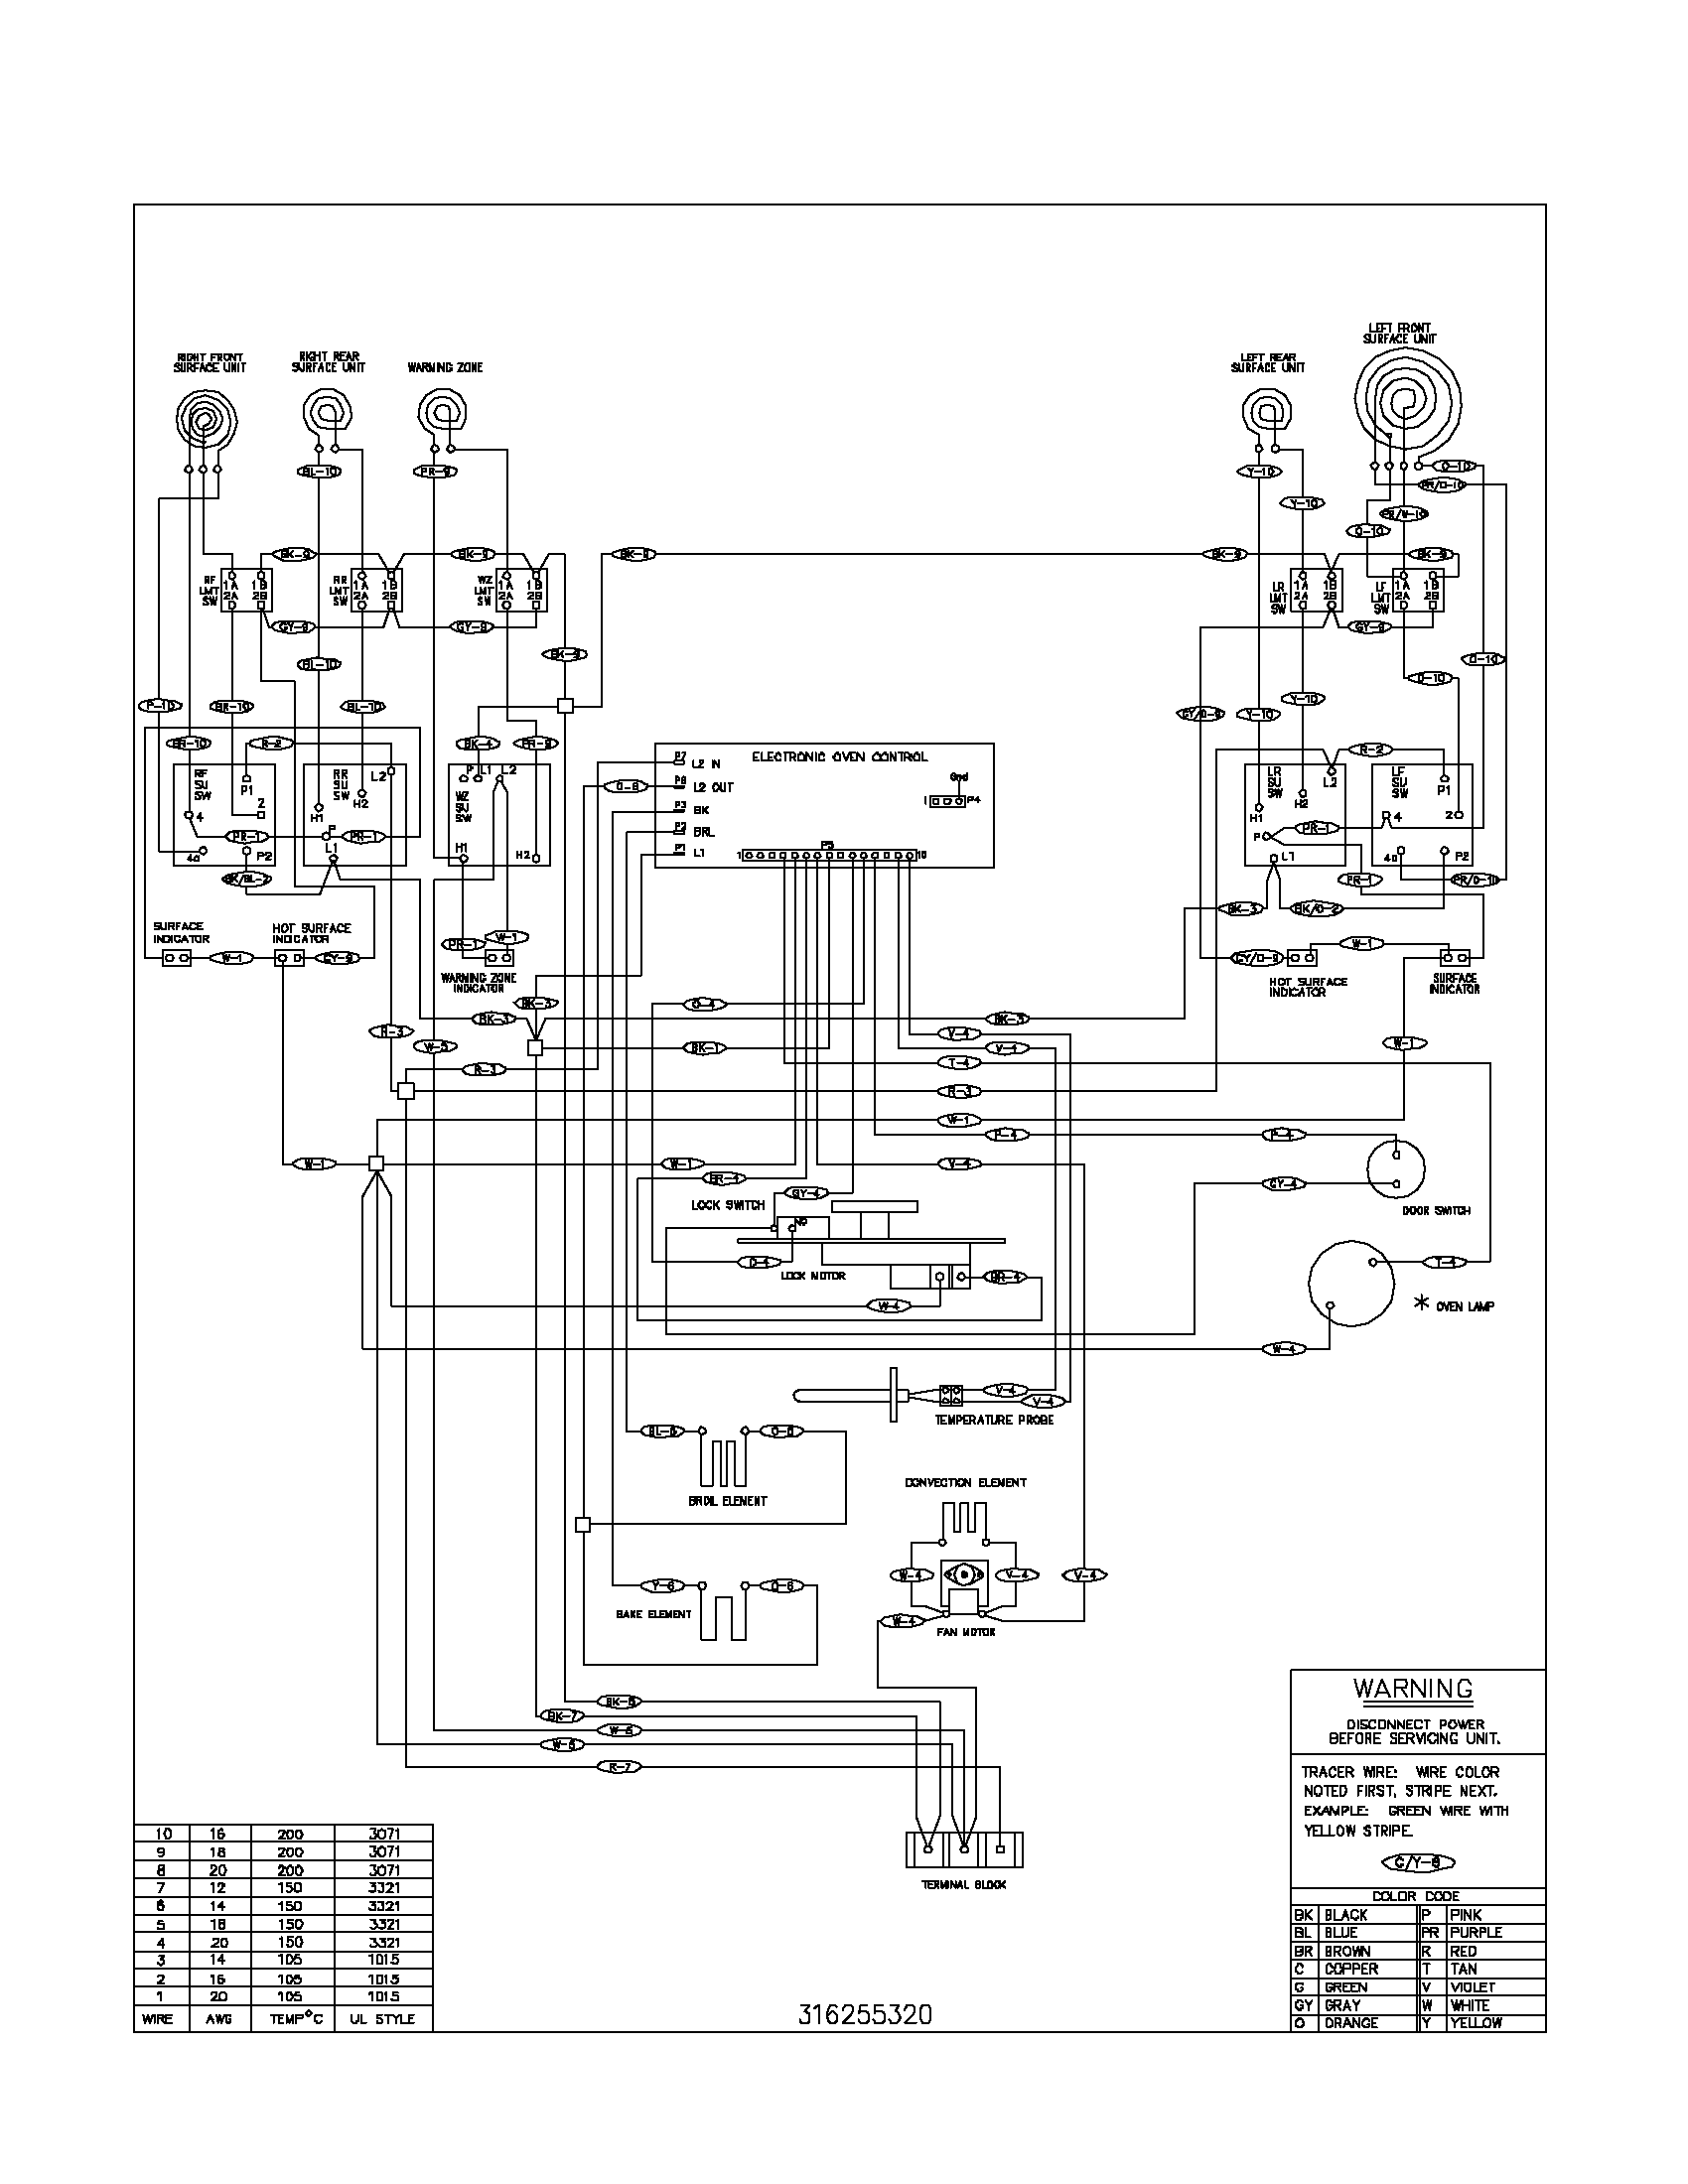 repair whirlpool refrigerator wiring diagram with Appliance on Lavadora Kenmore Gira Un Solo Lado T965212 likewise Amana Refrigerator Electrical Schematic together with Appliance also Lg Front Load Washer Parts Diagram together with Lg Filter Assembly 6201ec1006t Ap5251356.